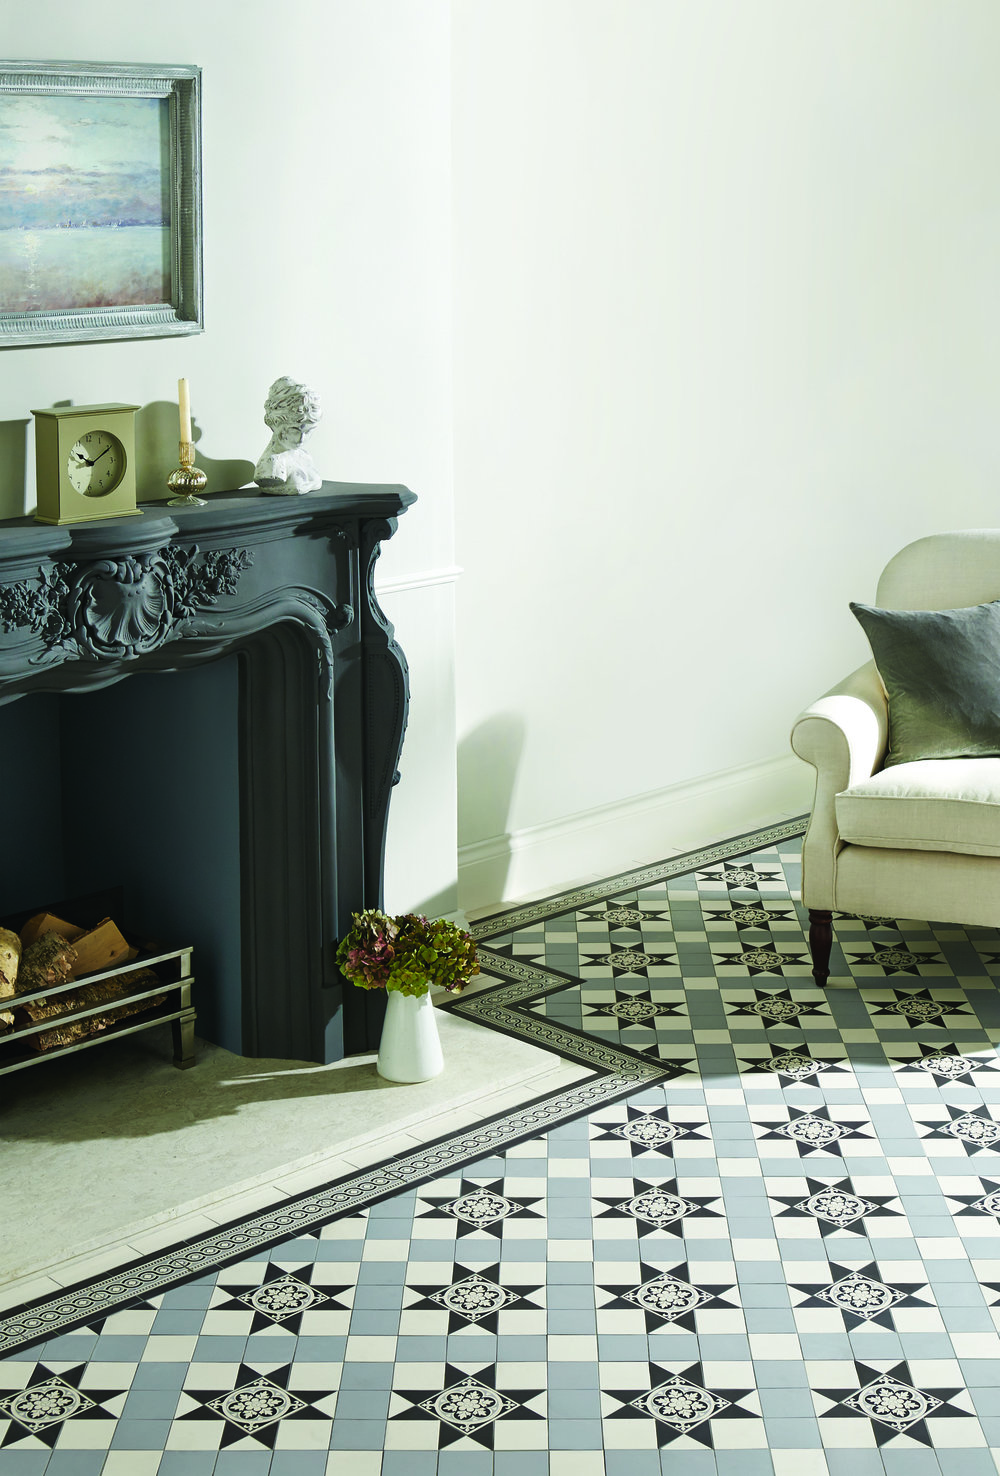 Original Style  - VFT - Blenheim pattern in Black Grey and Dover White with Telford Black border.jpg